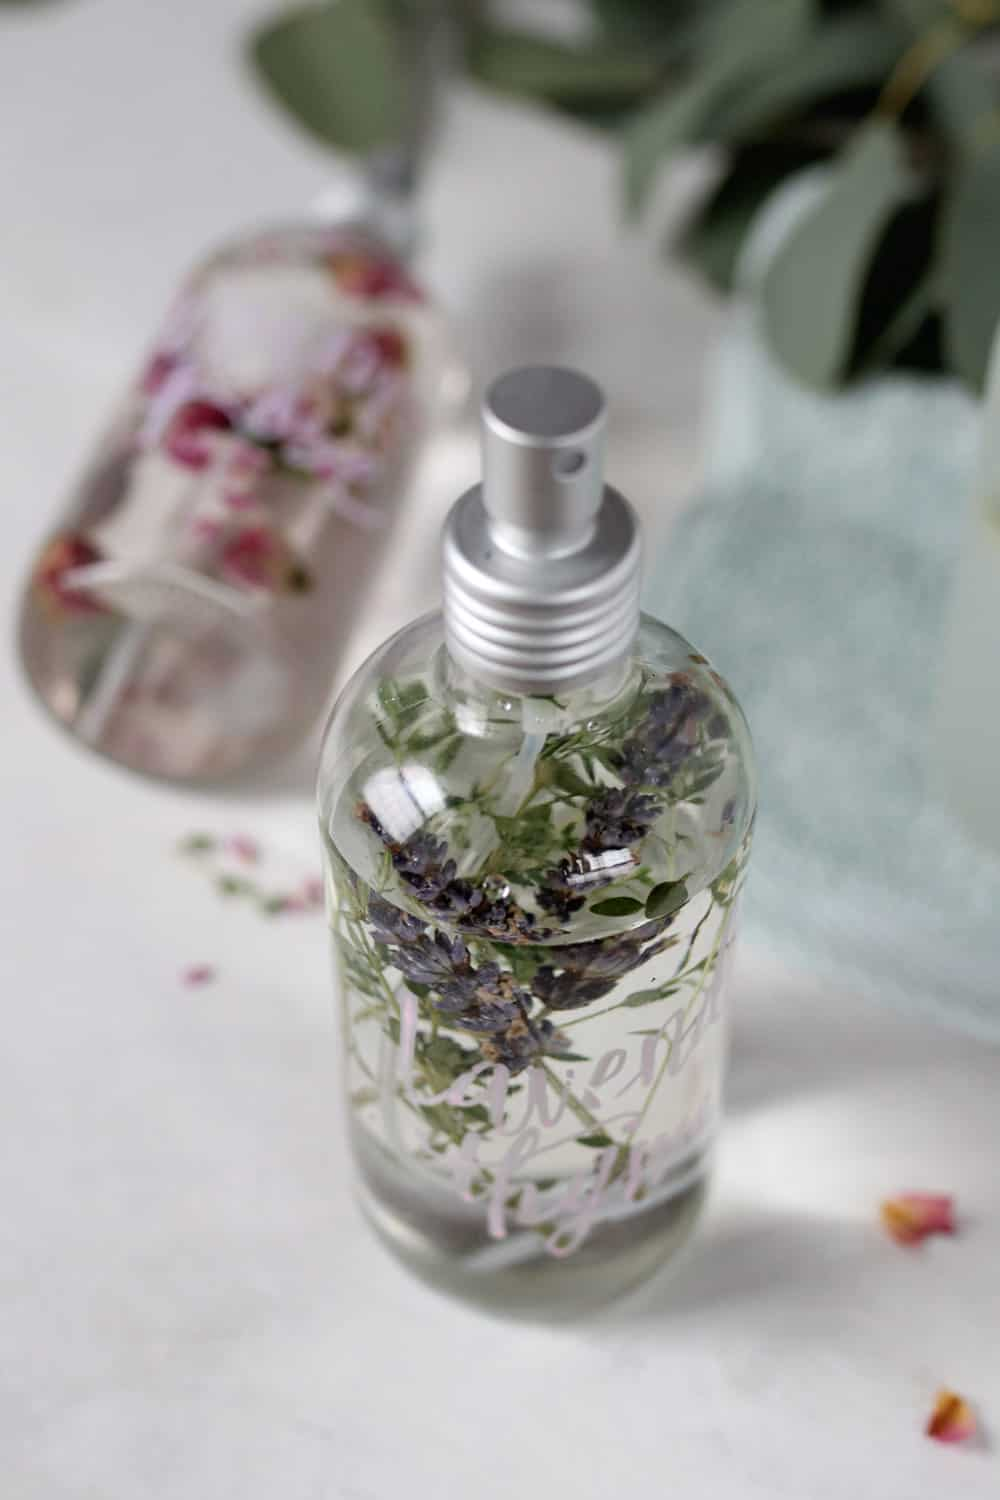 Upgrade Your Shower with These DIY Aromatherapy Shower Sprays